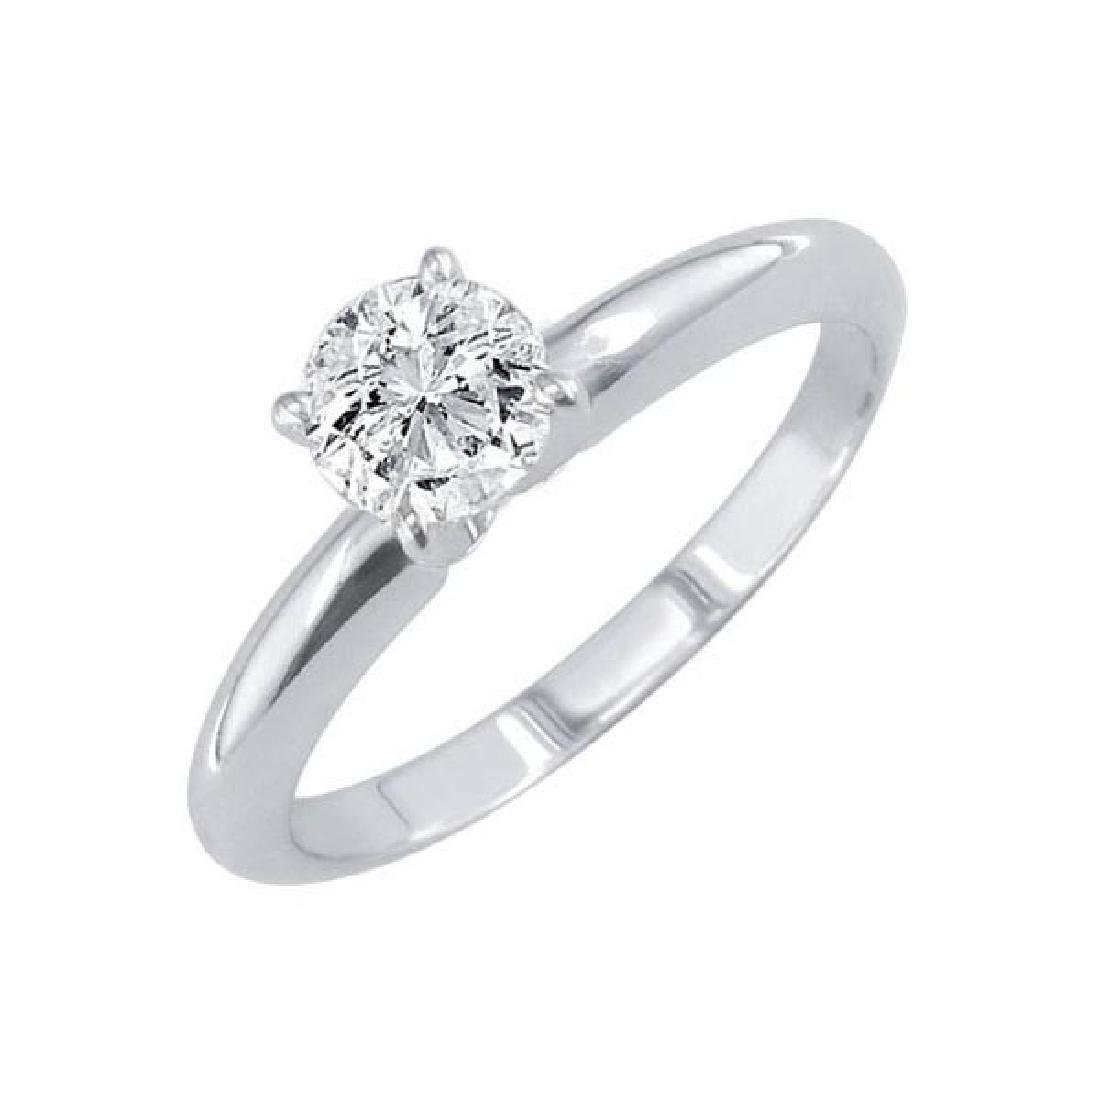 Certified 1.03 CTW Round Diamond Solitaire 14k Ring G/S